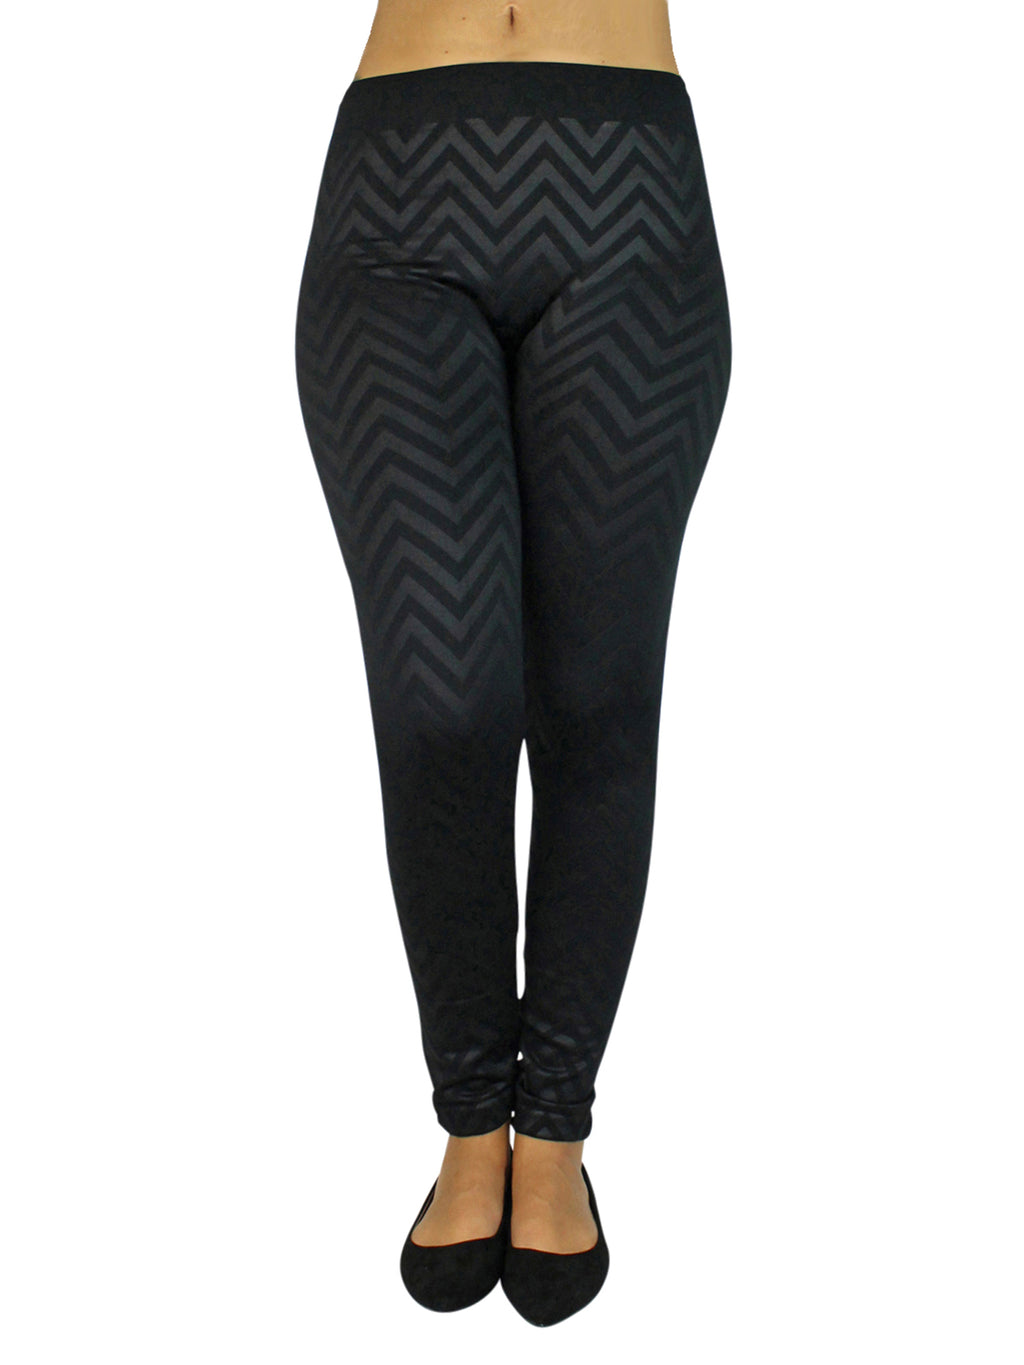 Black Chevron Stripe Leggings With Fleece Lining